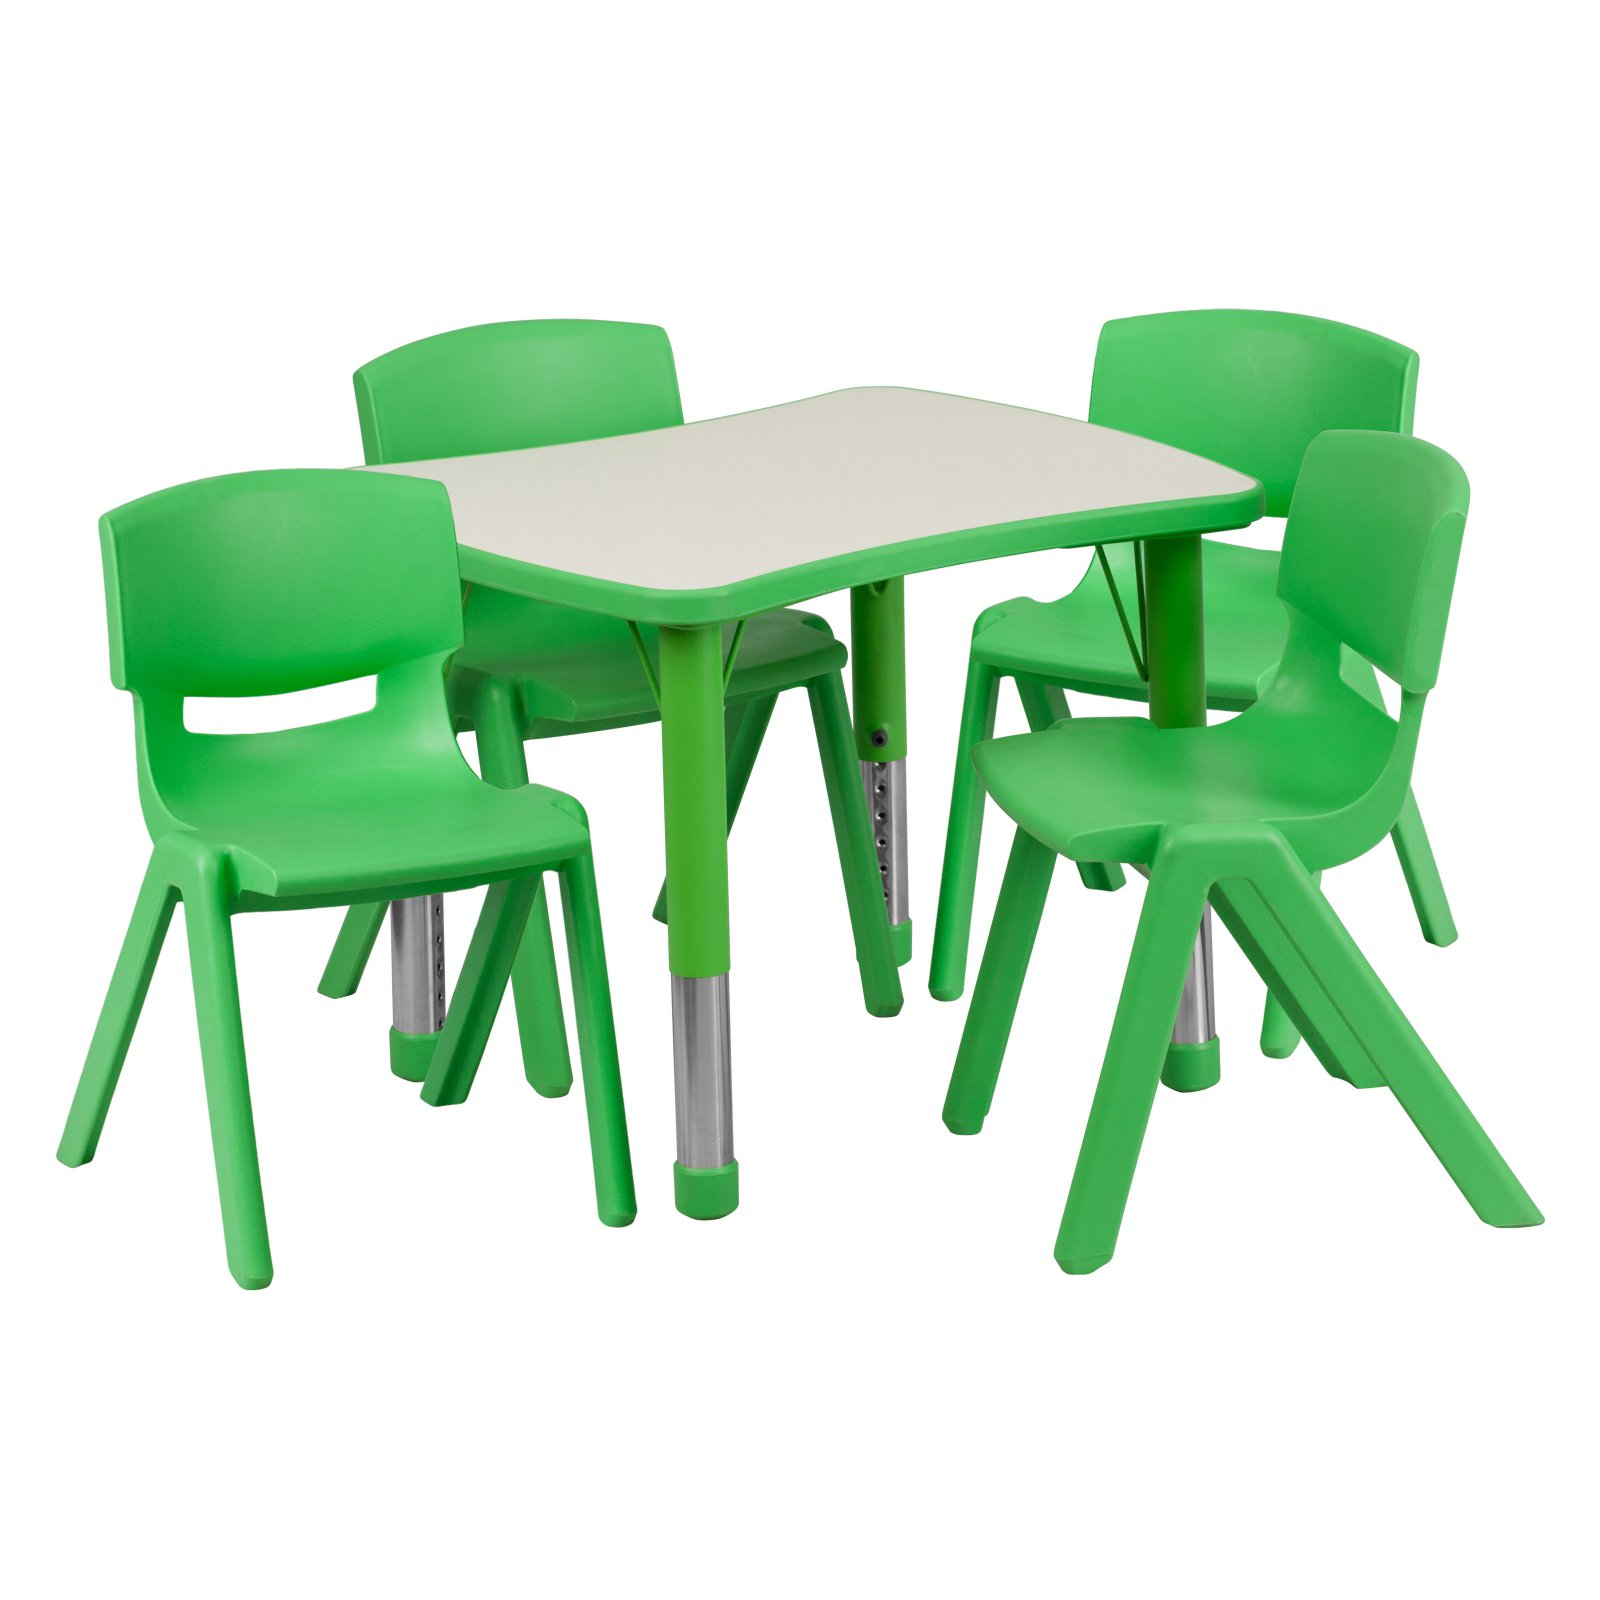 Flash Furniture 21.875''W x 26.625''L Adjustable Rectangular Plastic Activity Table Set in Multiple Colors with 4 School Stack Chairs, Grey